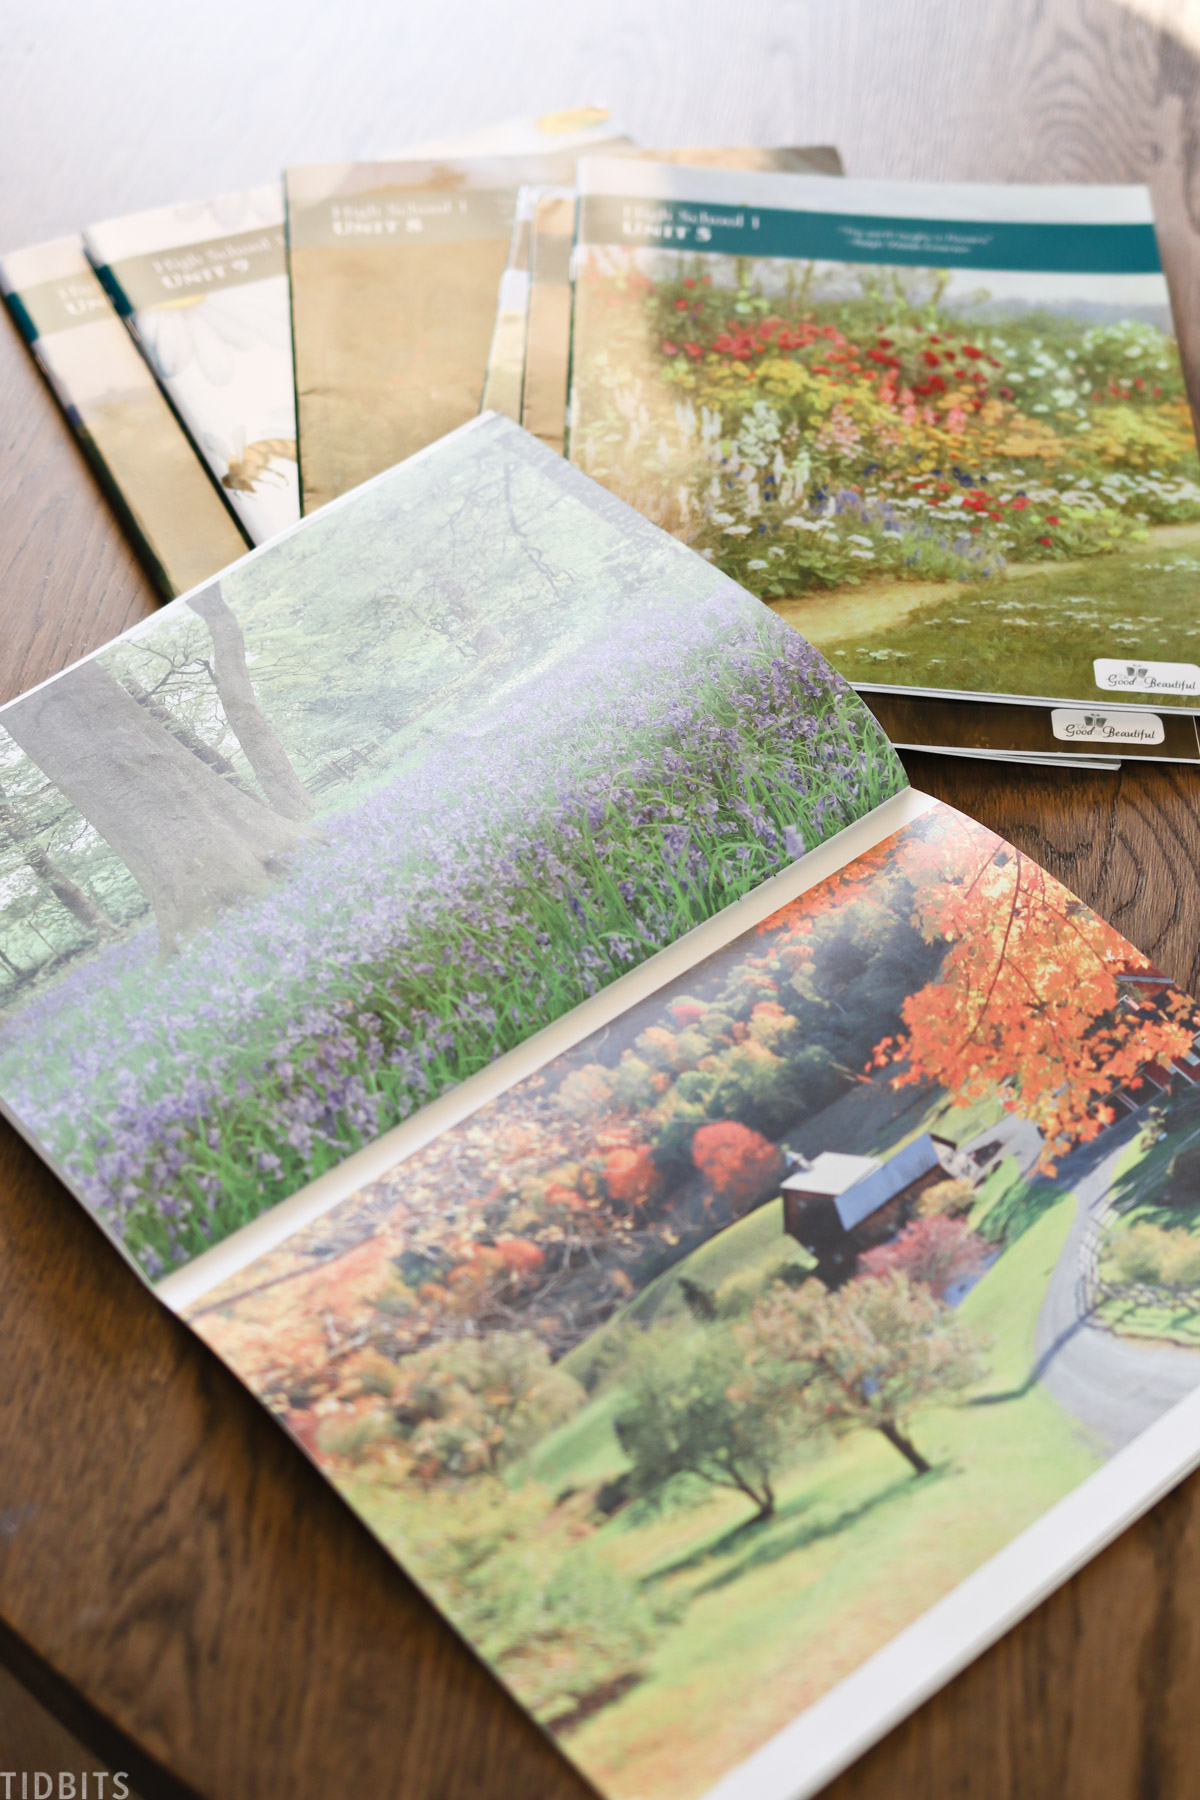 homeschooling booklets with one showing pictures of nature